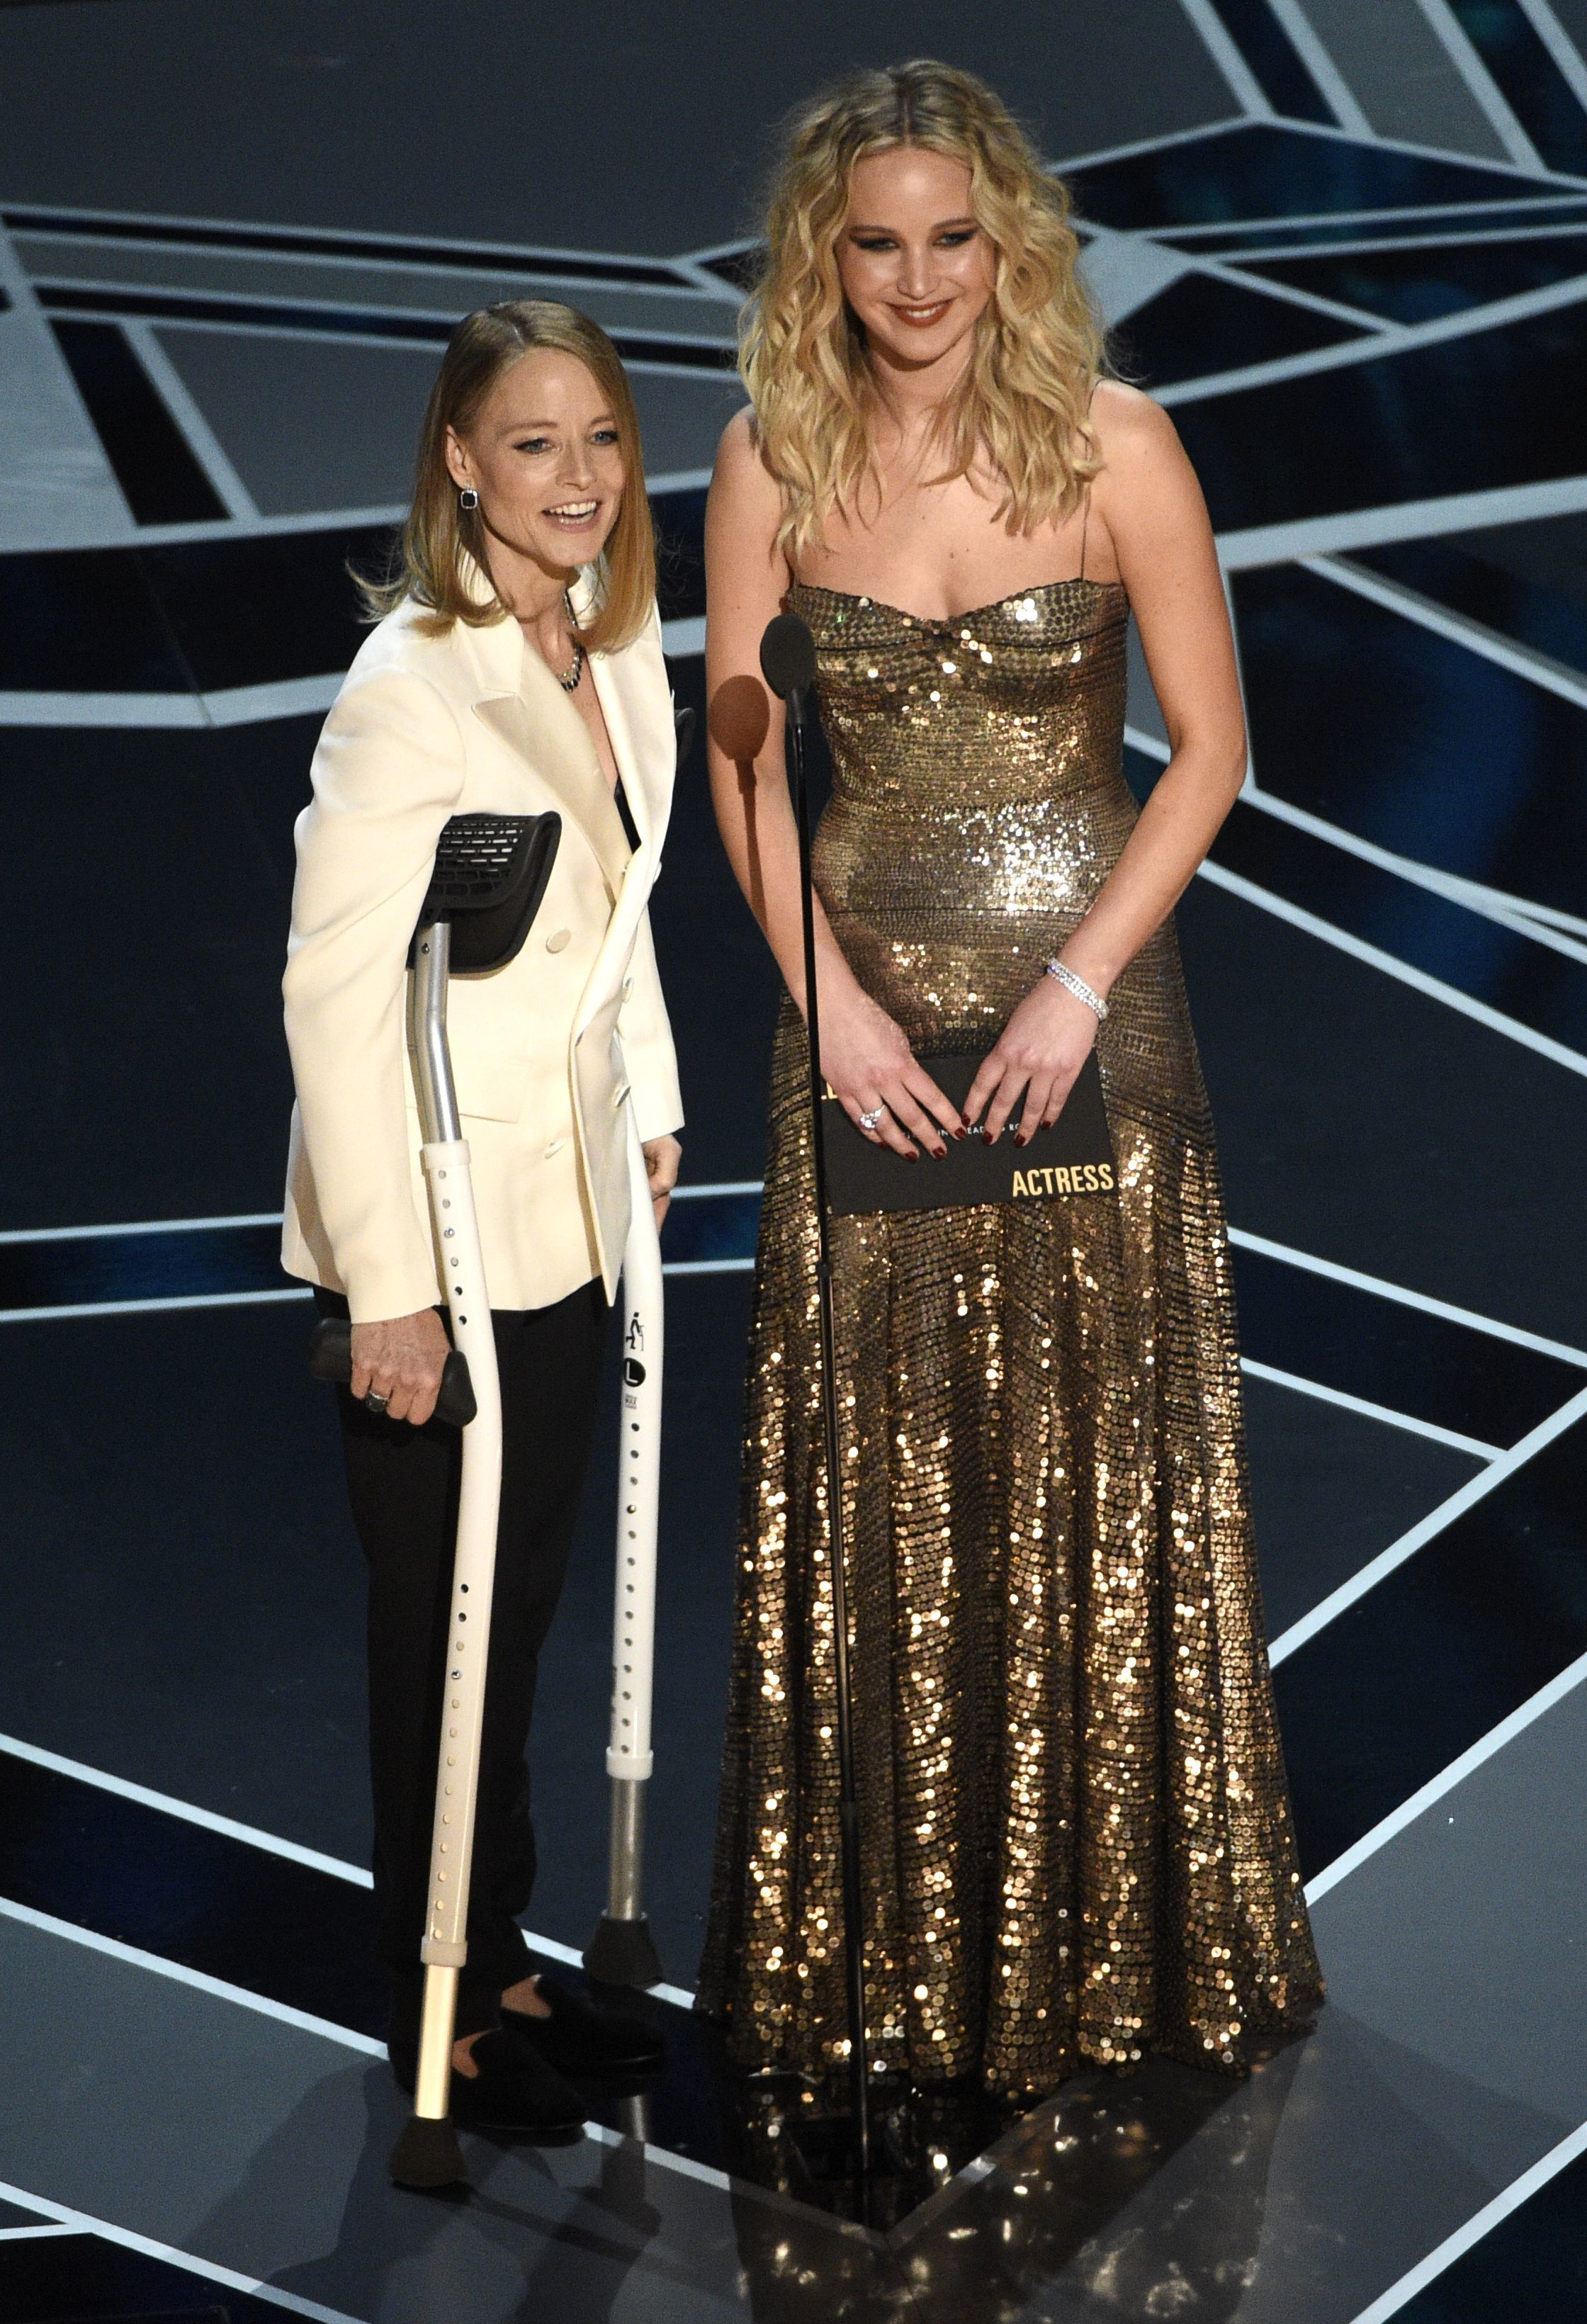 Jodie Foster and Jennifer Lawrence present the award for best performance by an actress in a leading role at the Oscars at the Dolby Theatre in Hollywood on March 4, 2018.